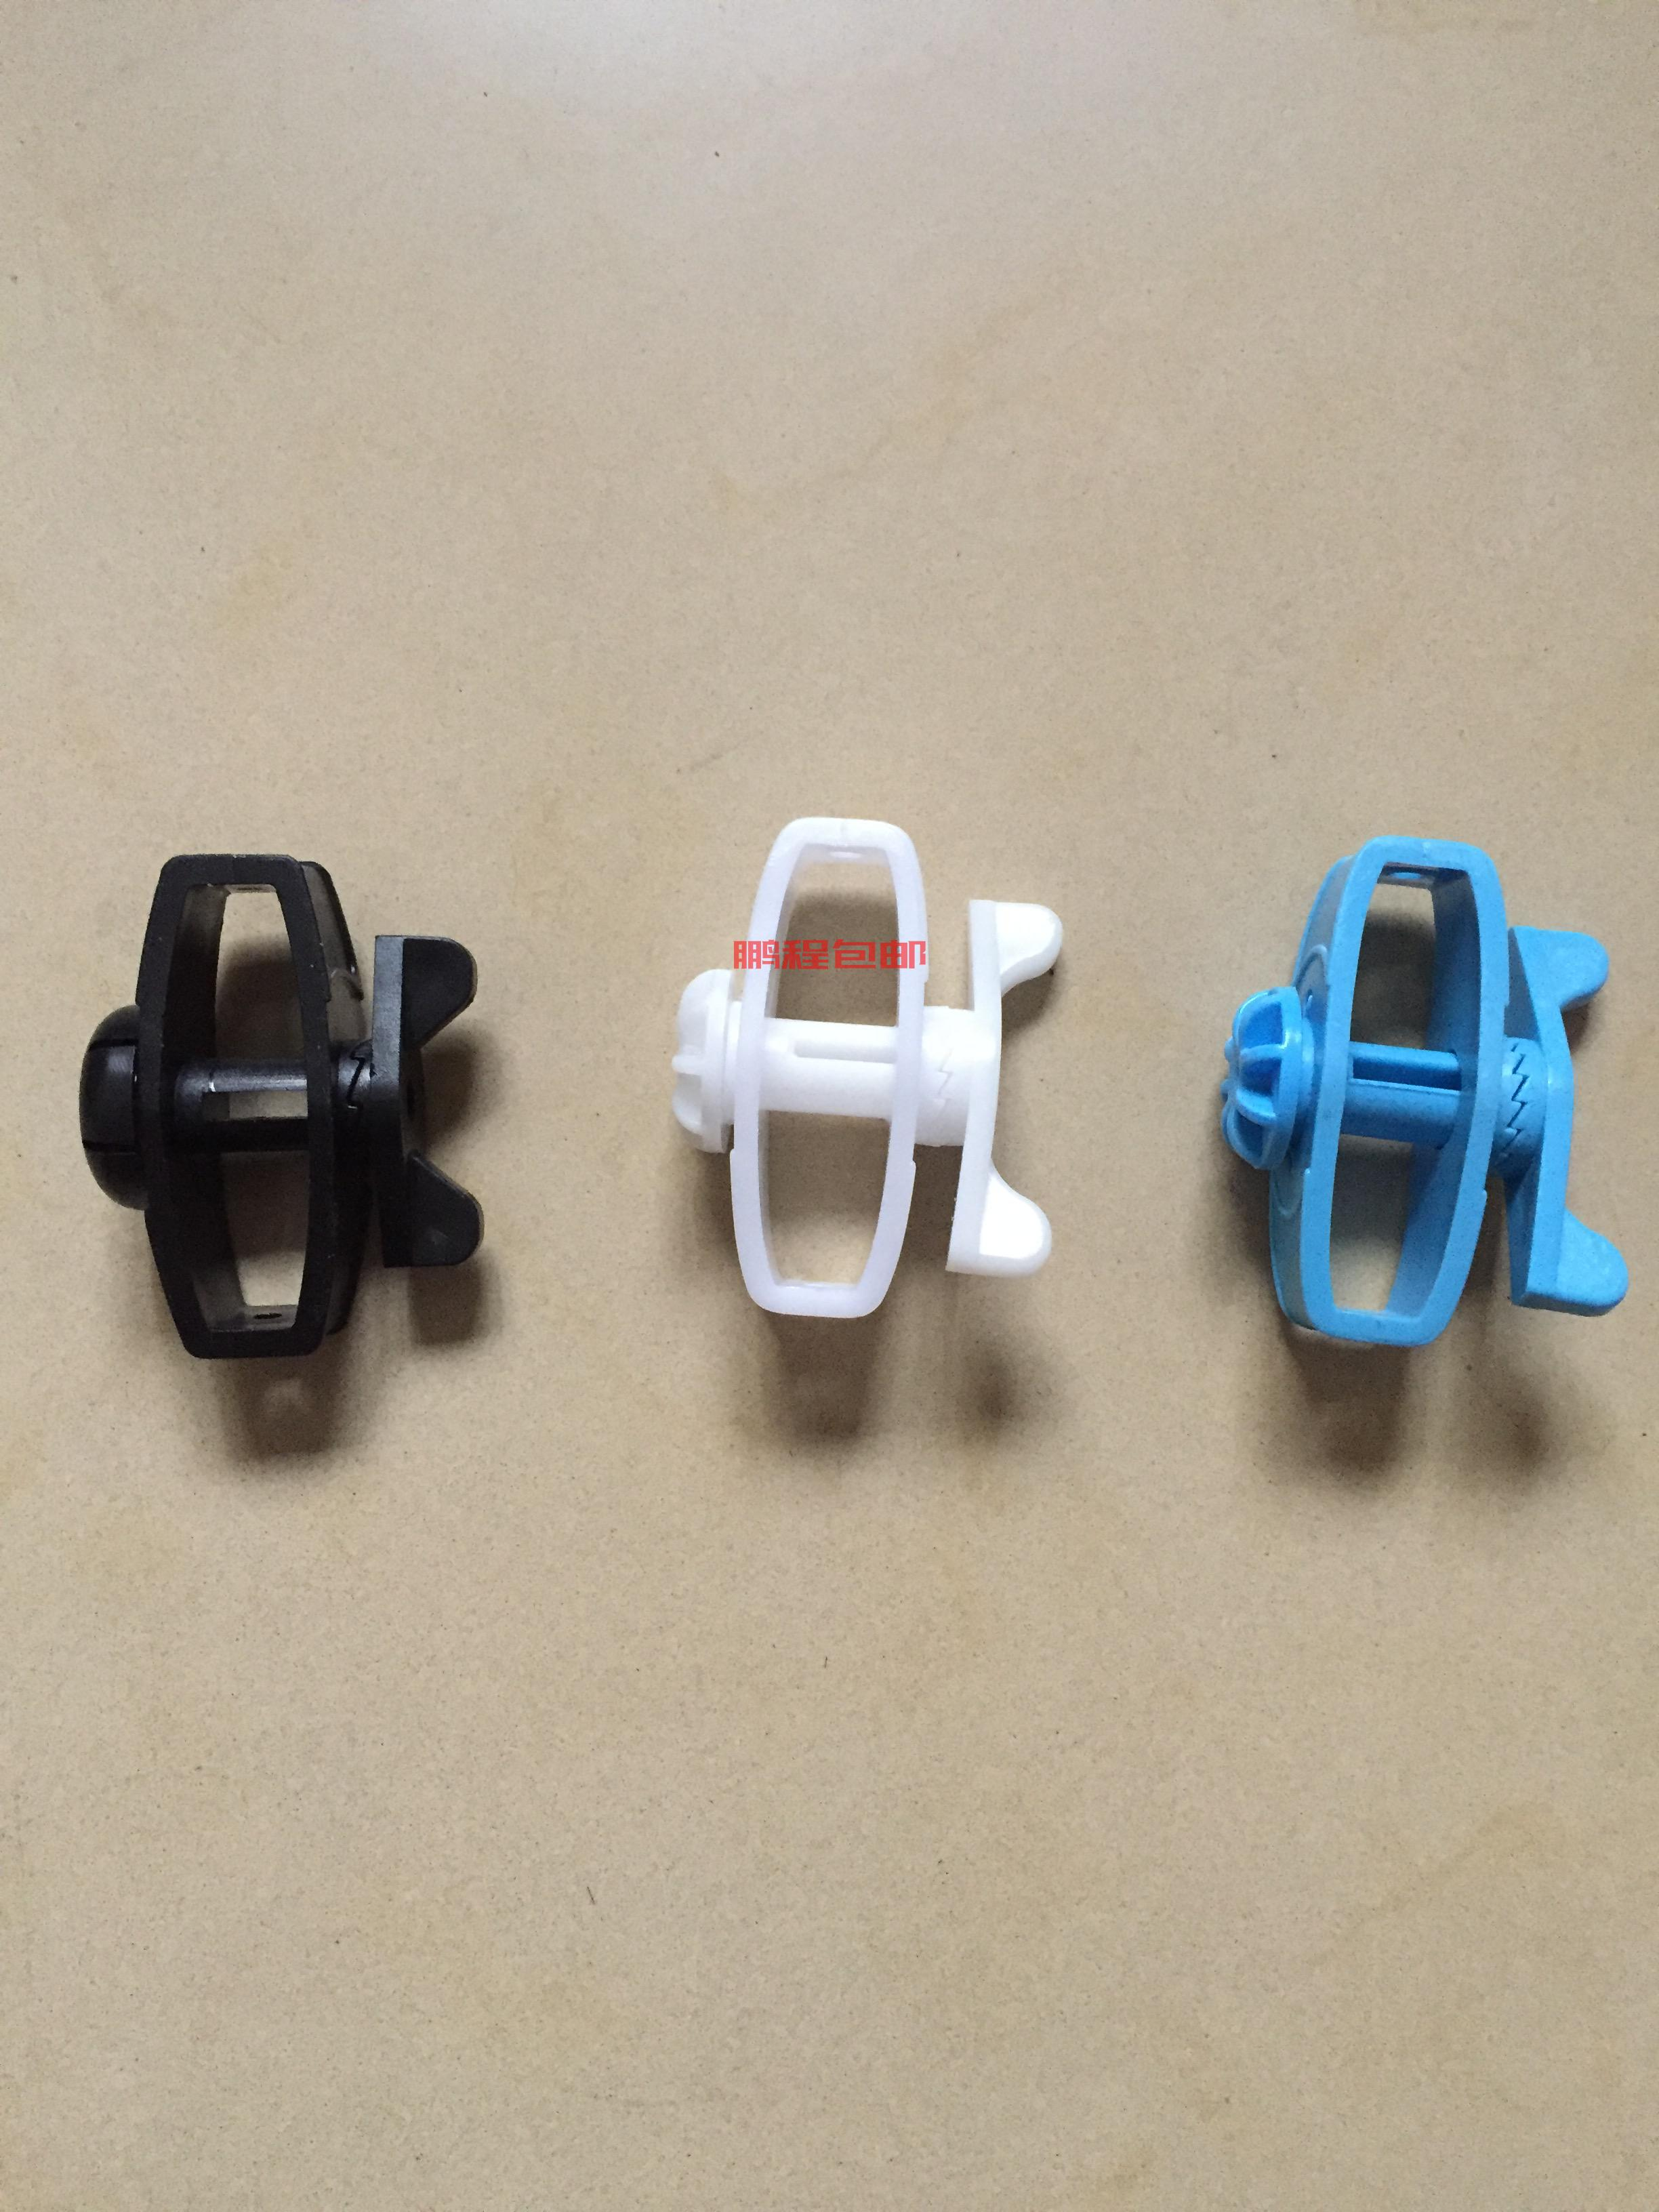 Electronic fence tensioner alloy wire tensioner black blue white High pressure pulse front-end accessories factory spot